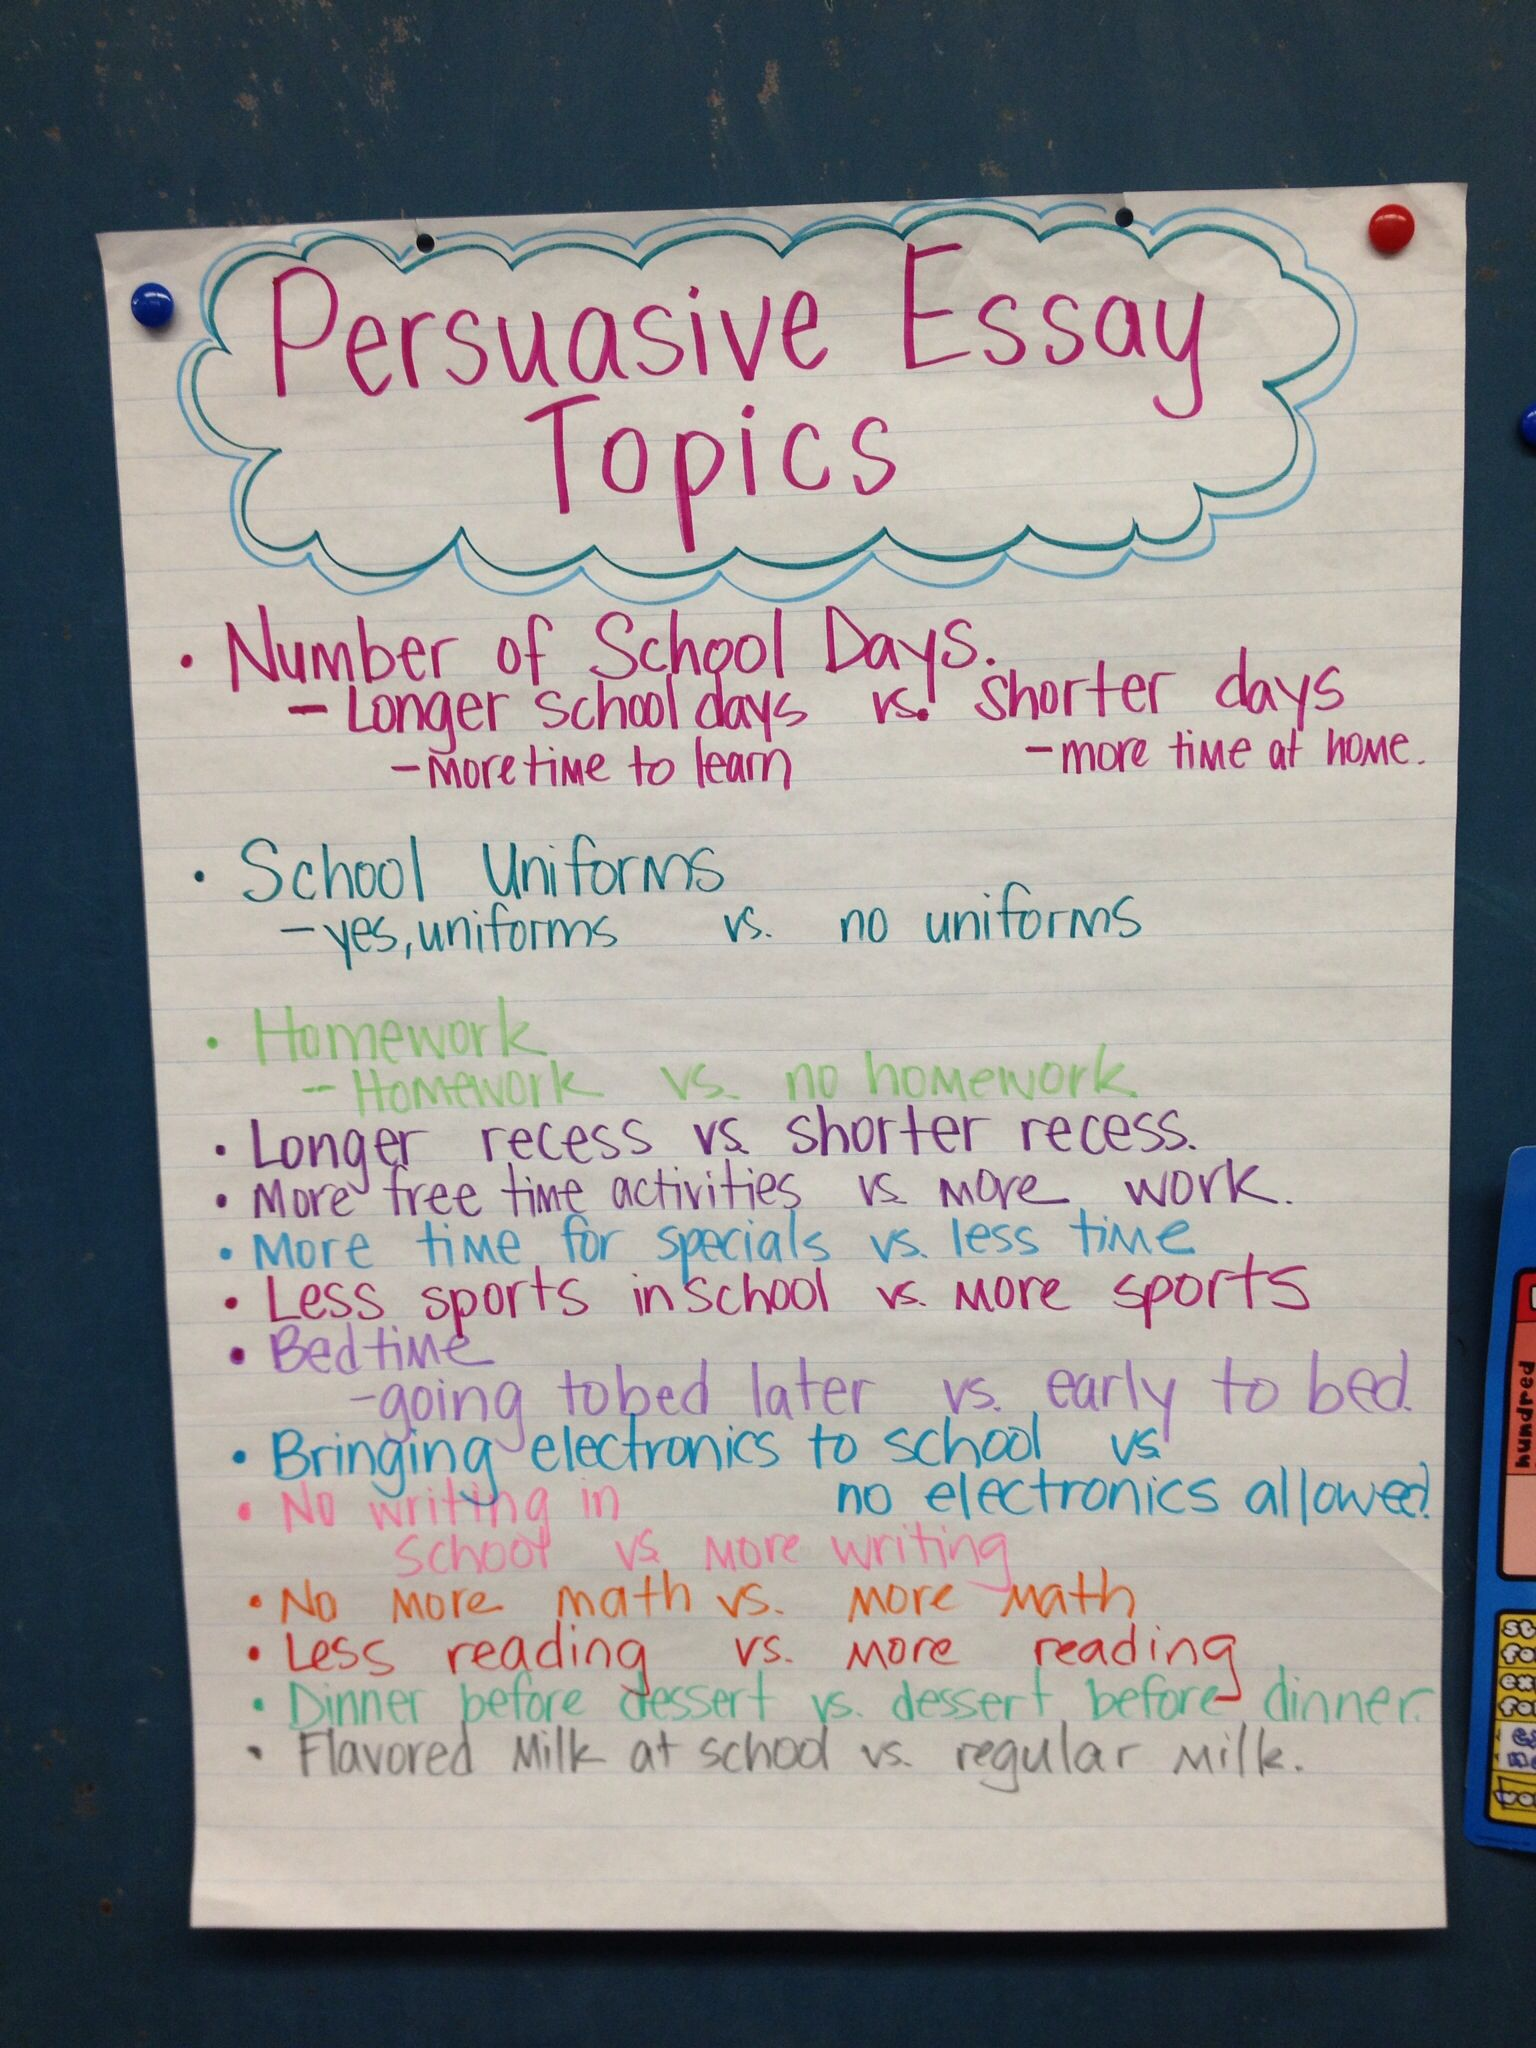 004 Topics For Persuasive Essays Essay Incredible 5th Graders Good A Middle Schoolers High School Full